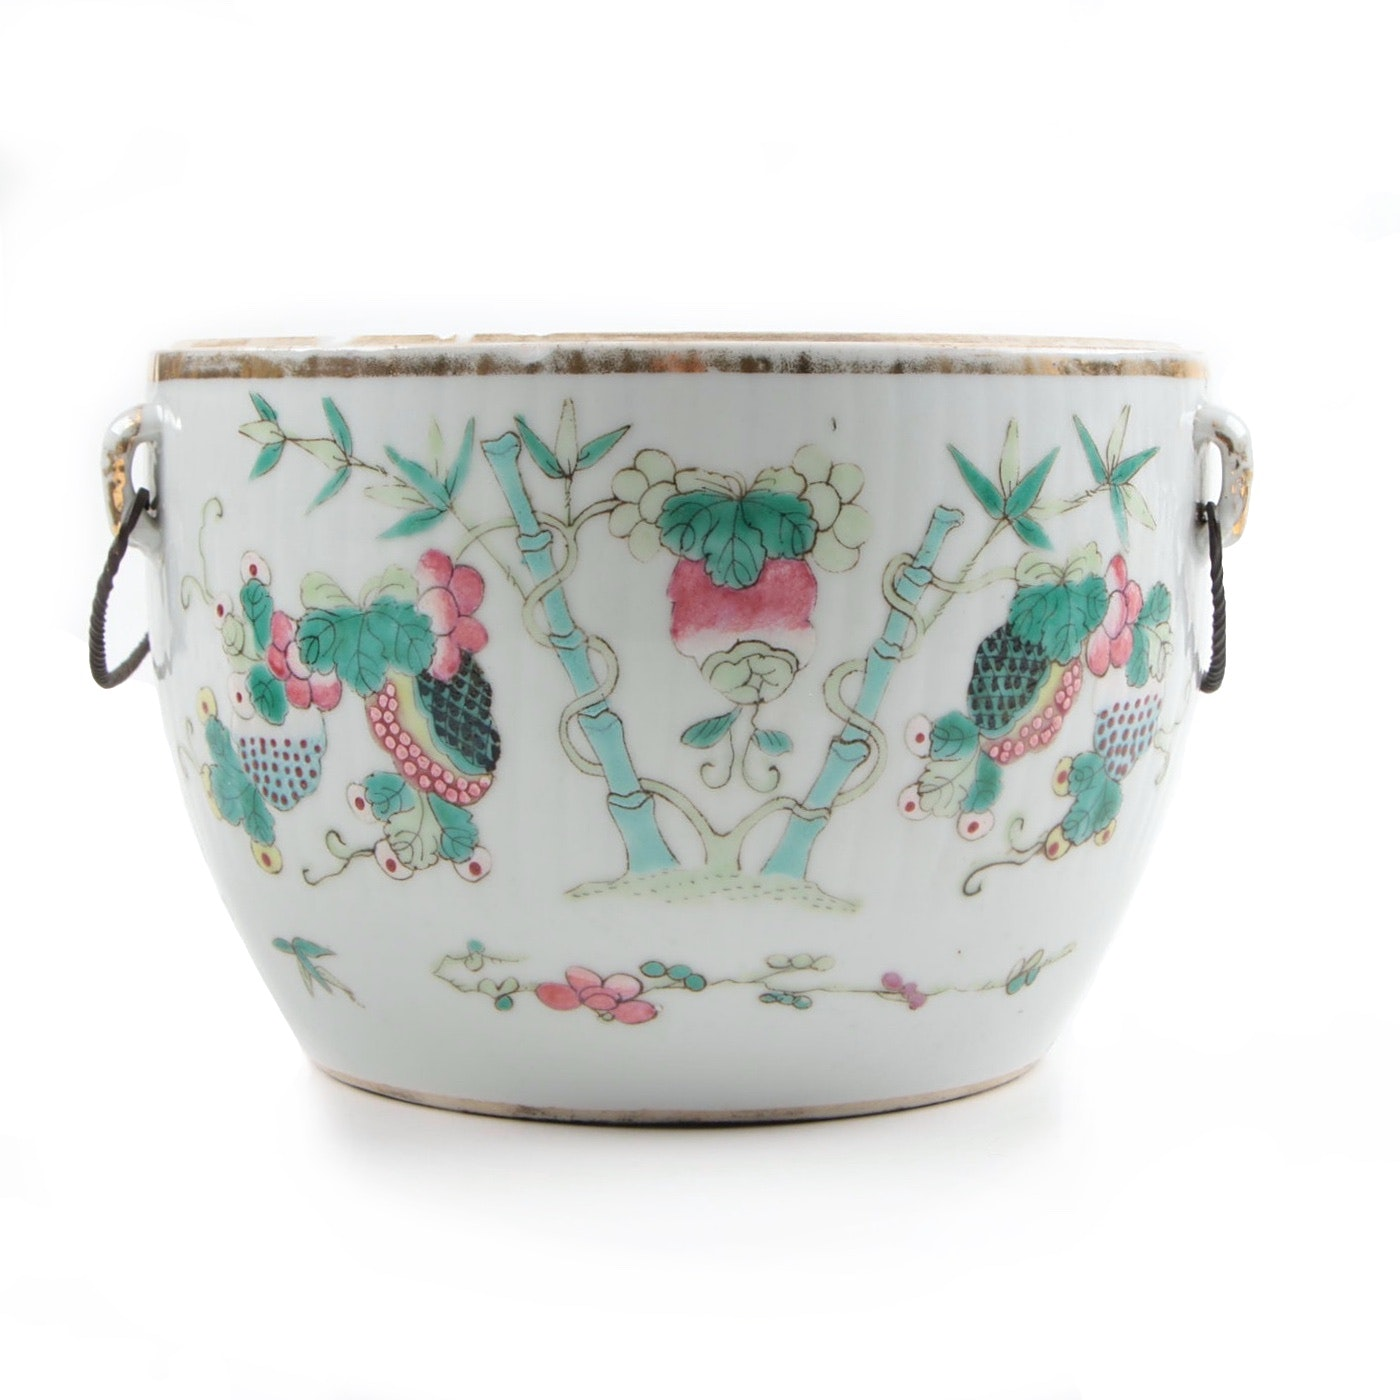 Chinese Famille Rose Biscuit Barrel, Late Qing/Republic